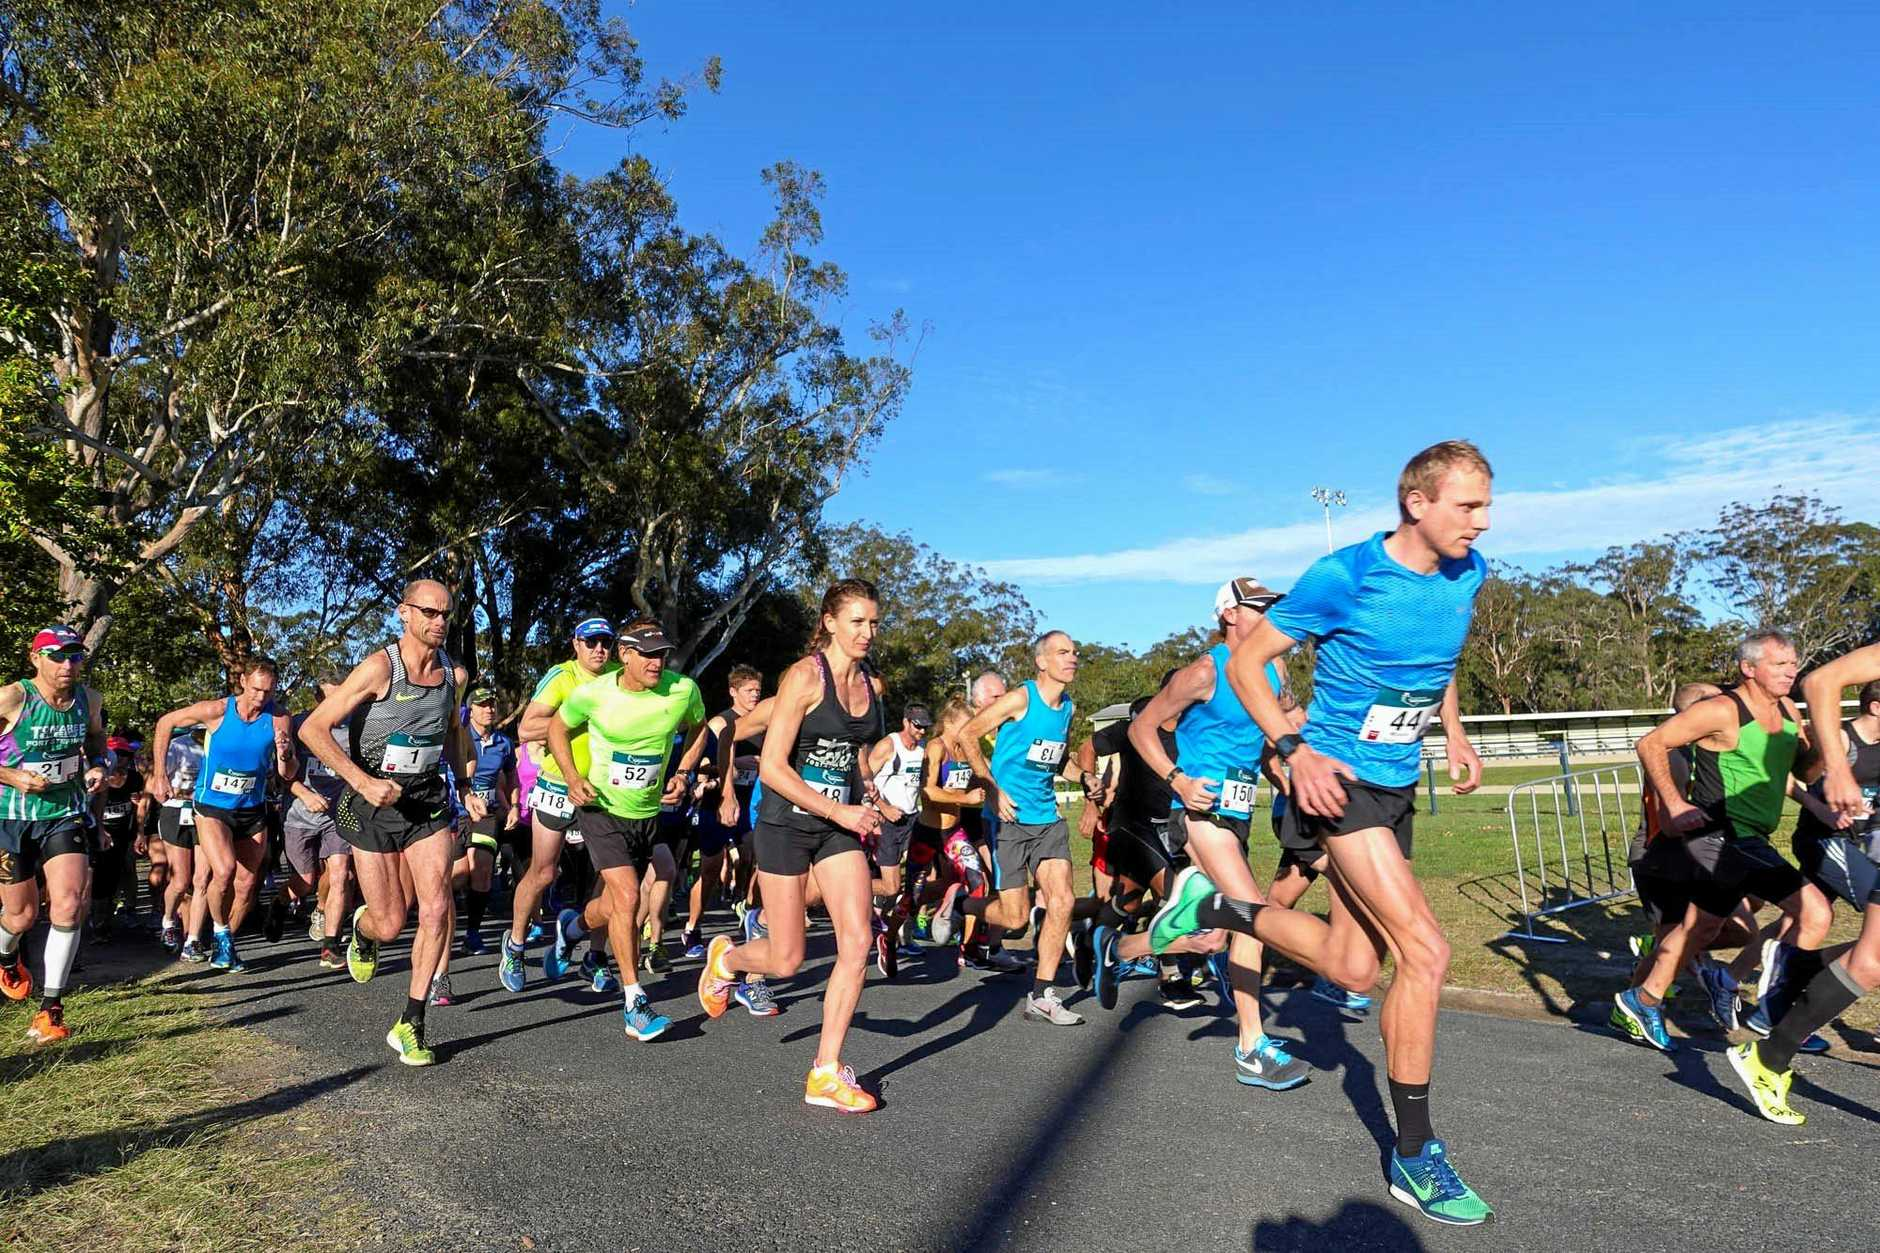 Online entries for this Sunday's Bendigo Bank Coffs Harbour Running Festival close on Friday.